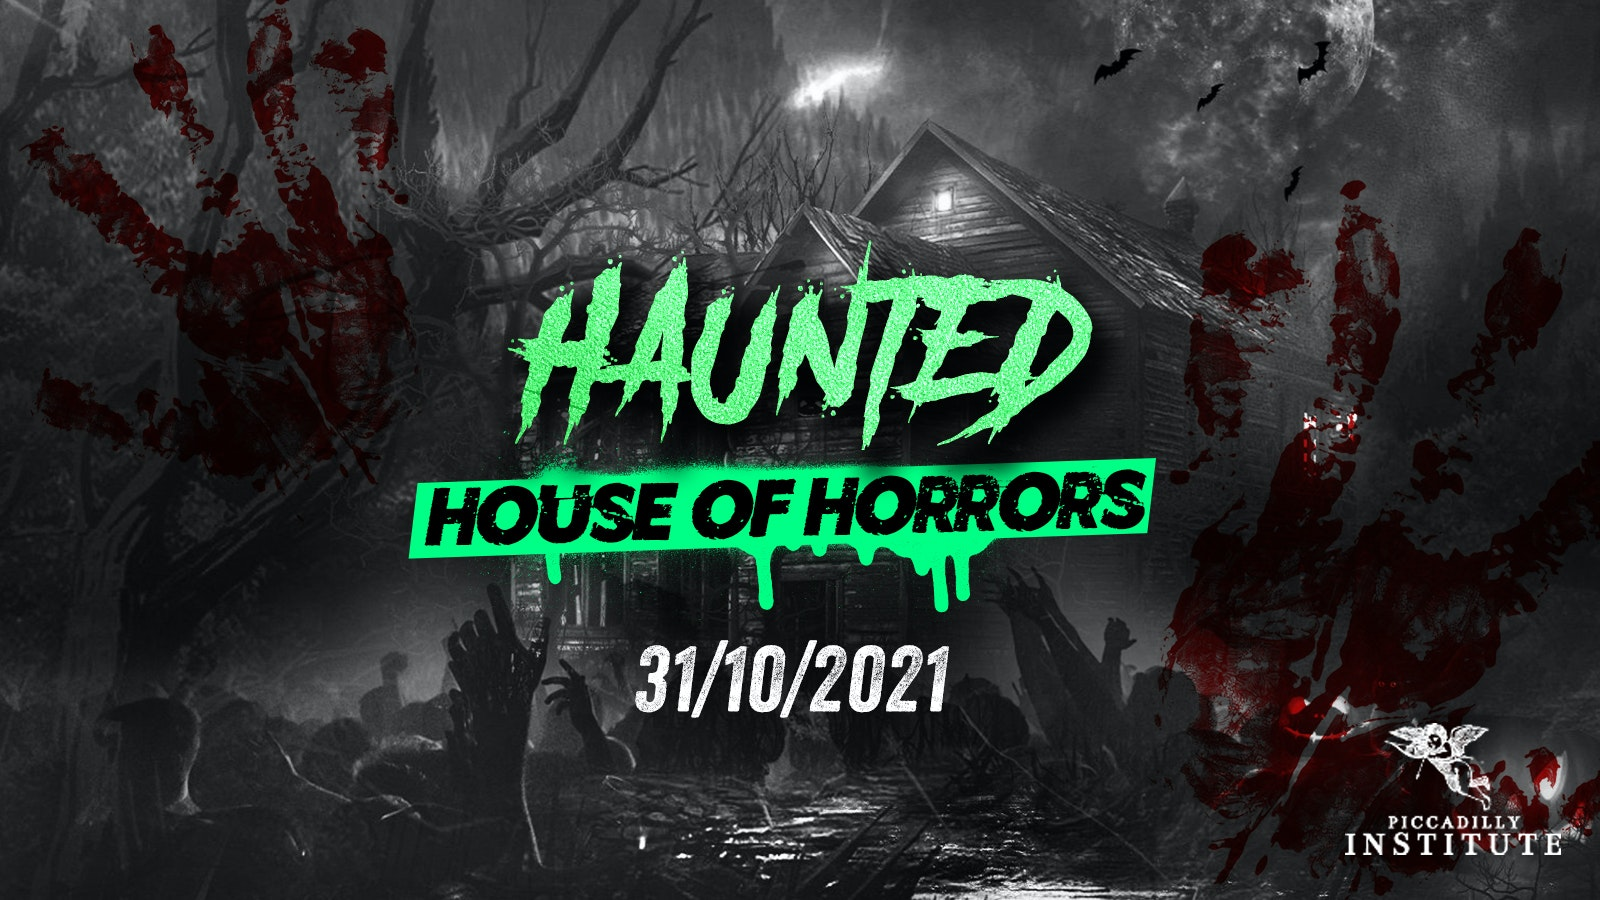 The Haunted House of Horrors @ Piccadilly Institute | London Halloween 2021